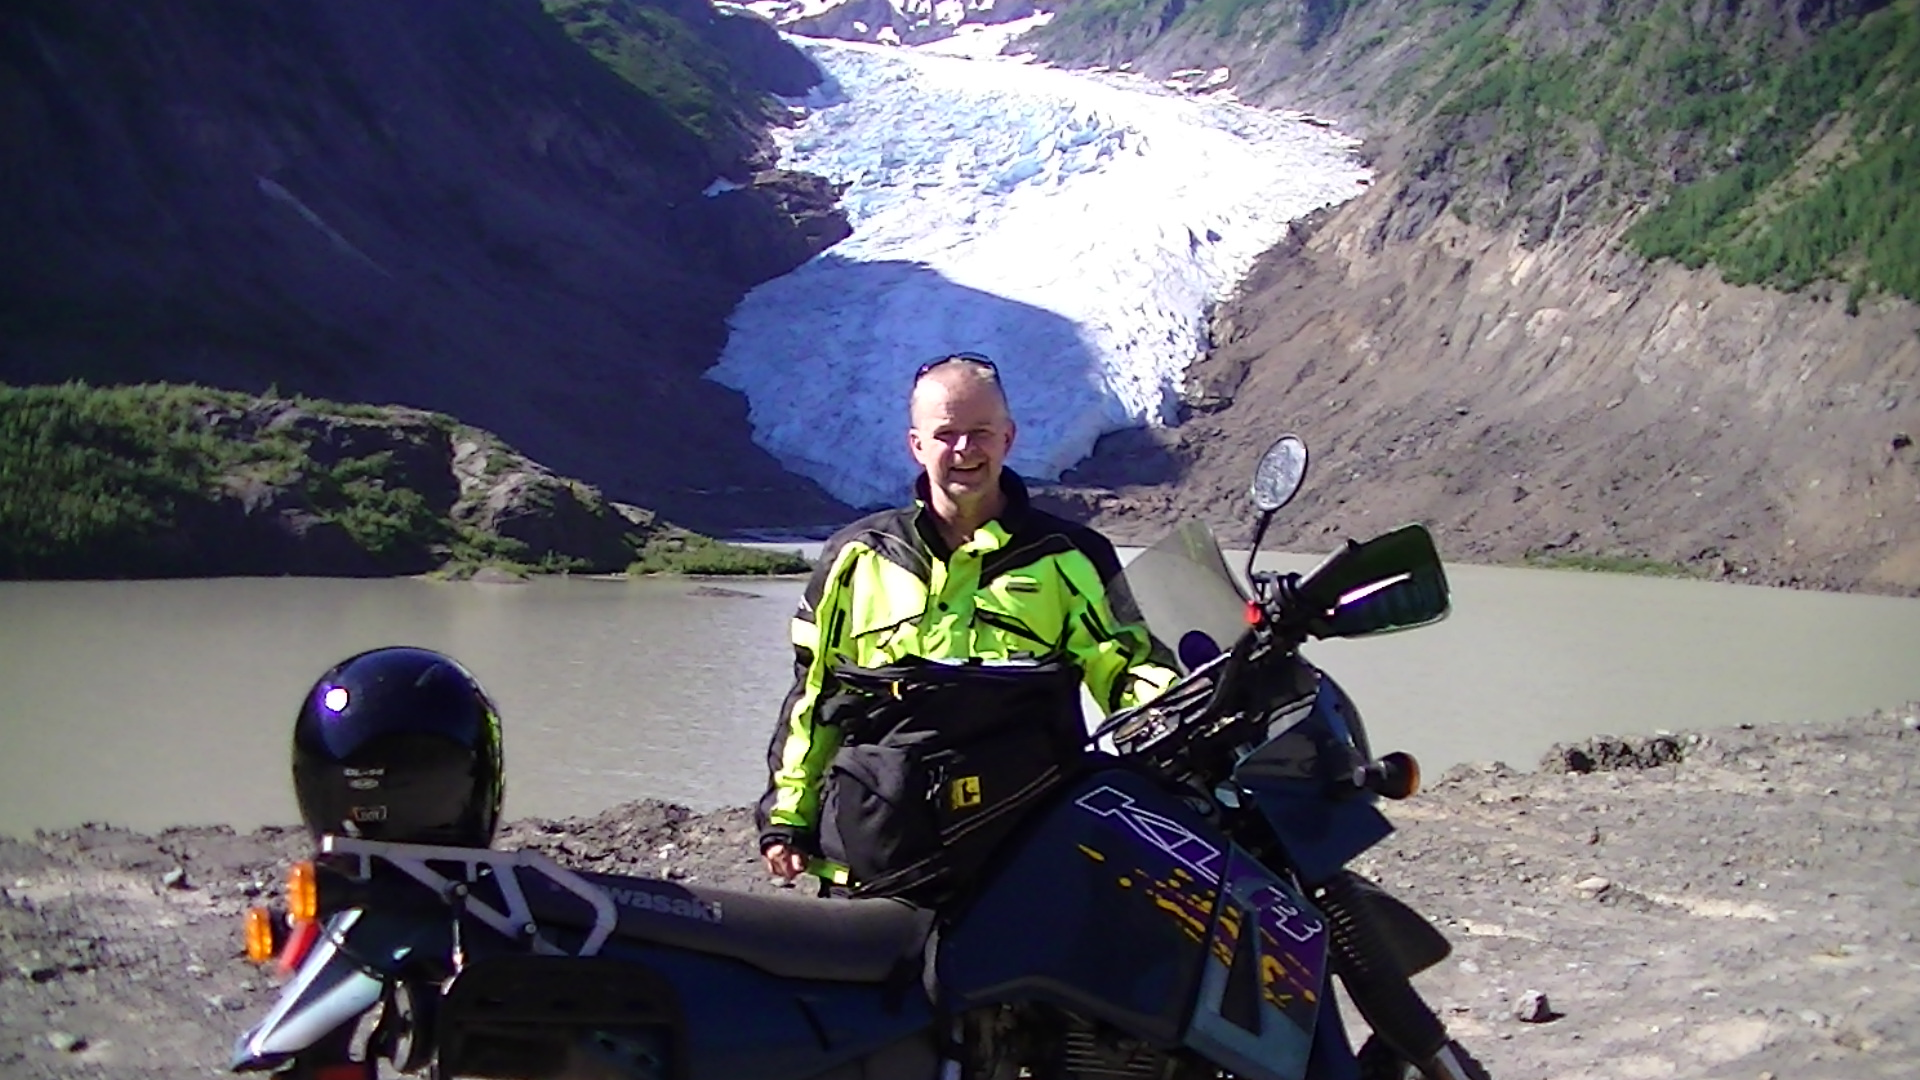 Trevor-Mark-Hughes-Adventure-Rider-Radio-Motorcycle-Podcast-7.JPG